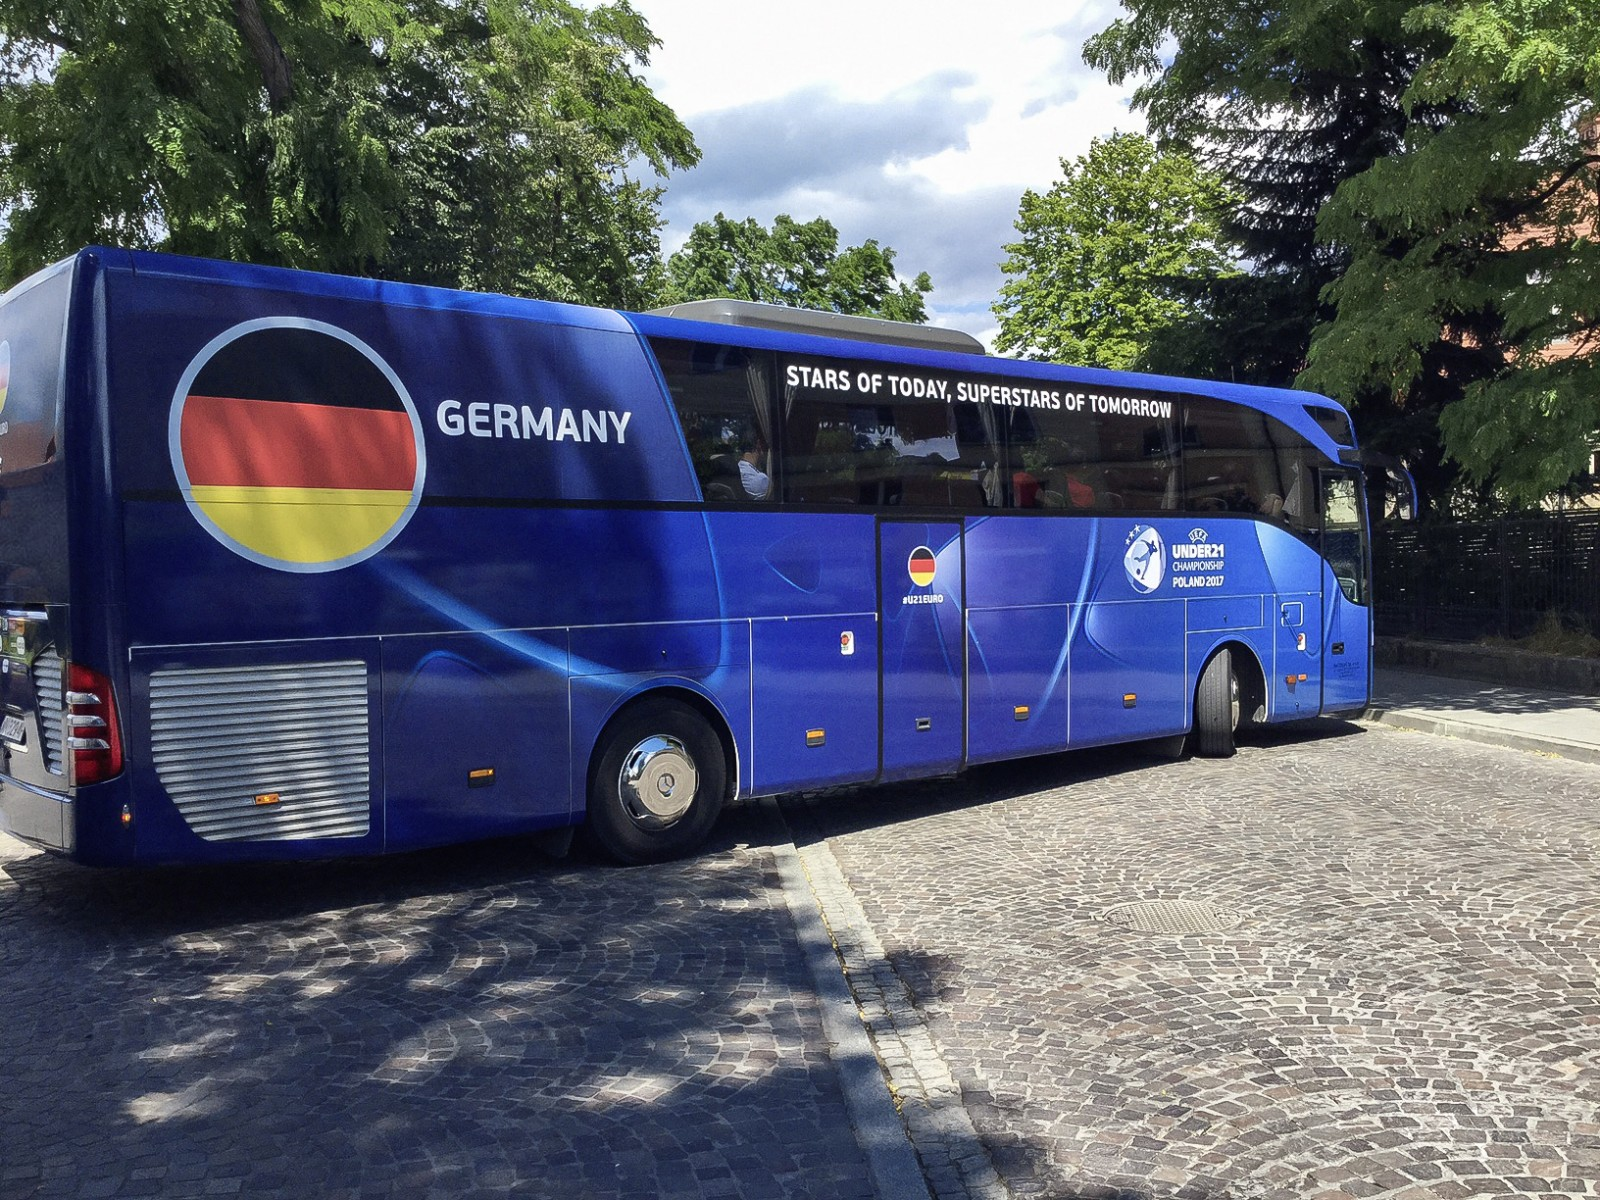 European champions travel by Mercedes-Benz Tourismo: German U21 football team wins Euro Championship on June 30, 2017